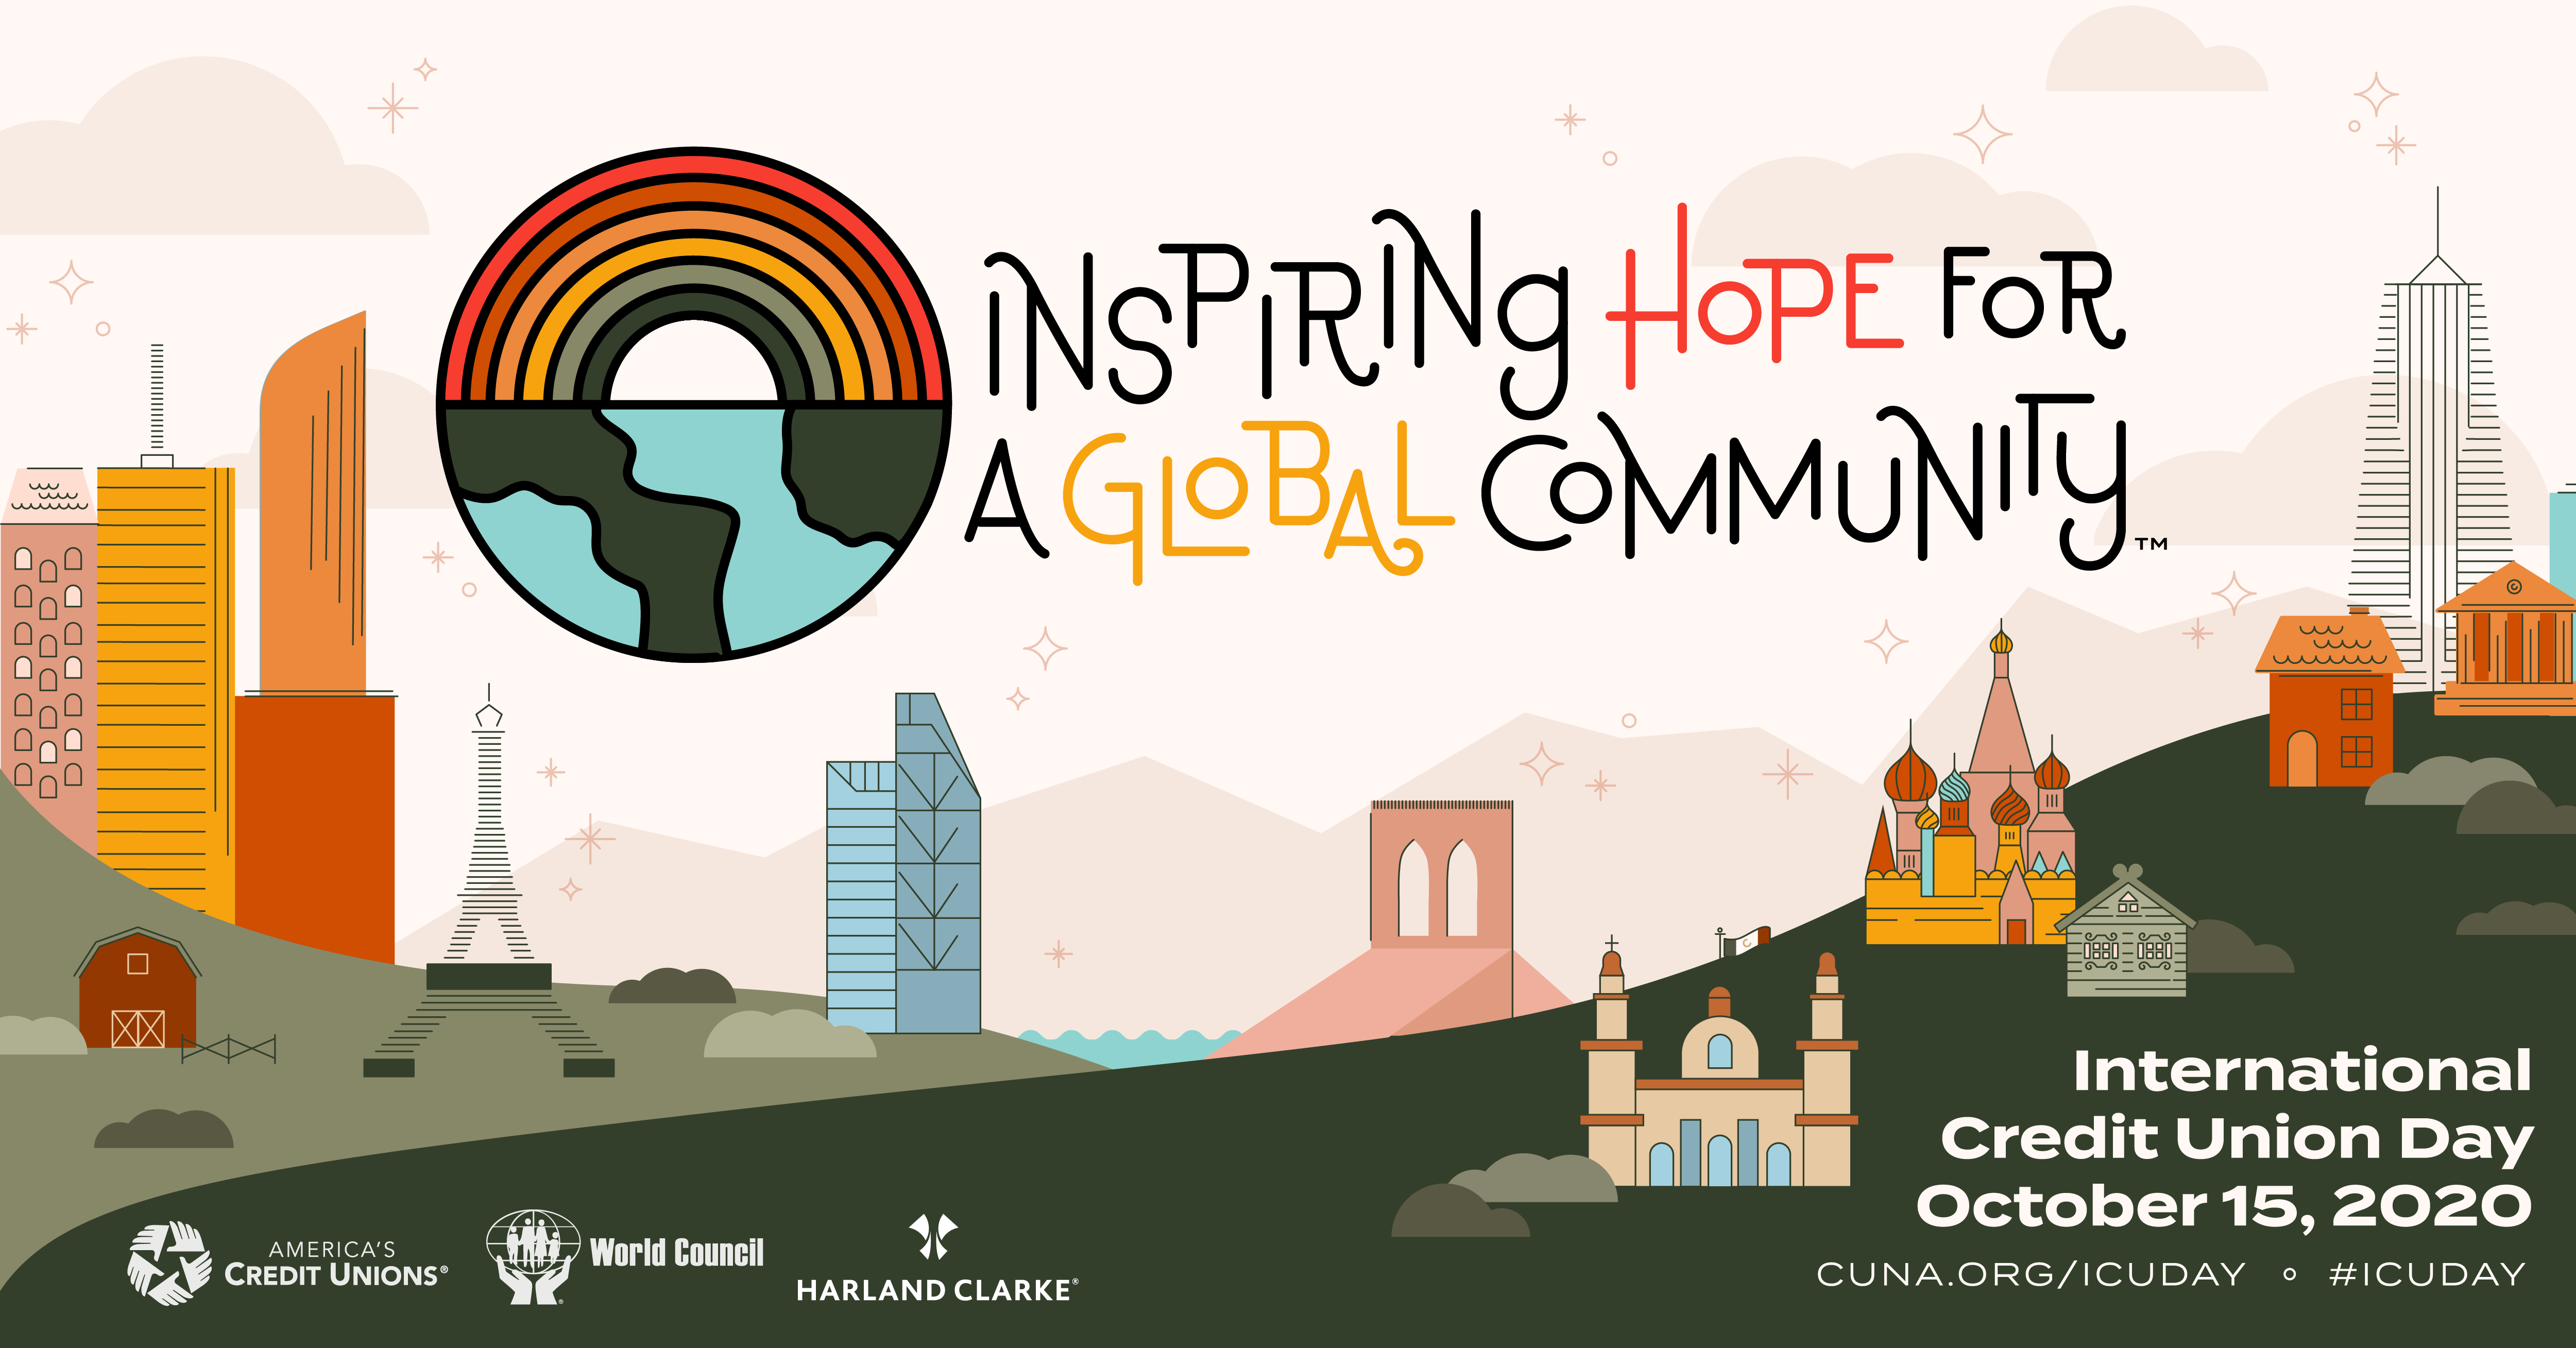 CUNA Inspiring Hope for a Global Community